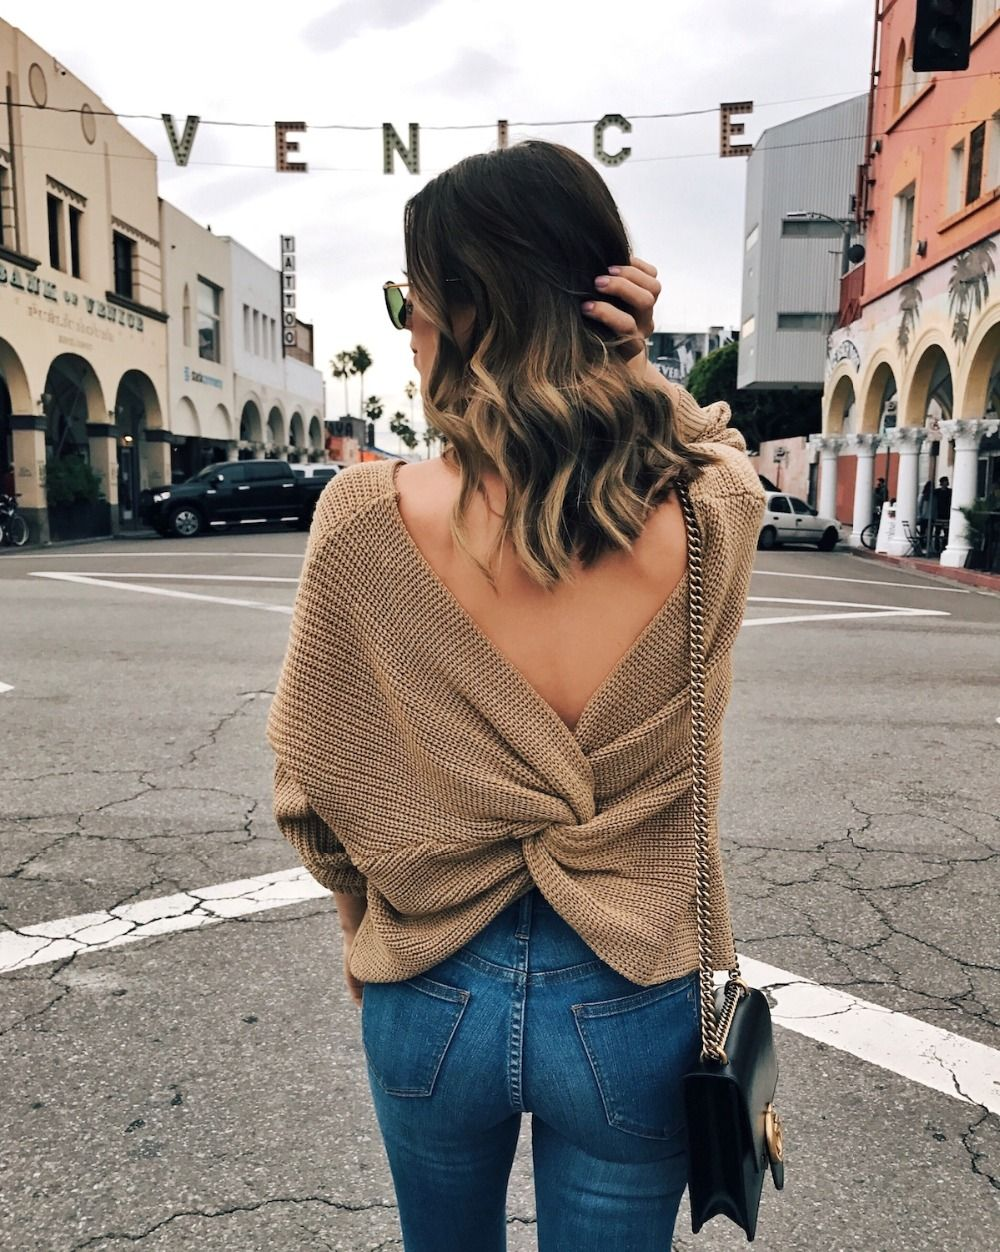 Women Sexy Back V <font><b>Neck</b></font> Cross Twisted Sweaters Pullovers 2017 Winter New Oversized Long Sleeve Knitted Jumper Knitwear Pull Femme